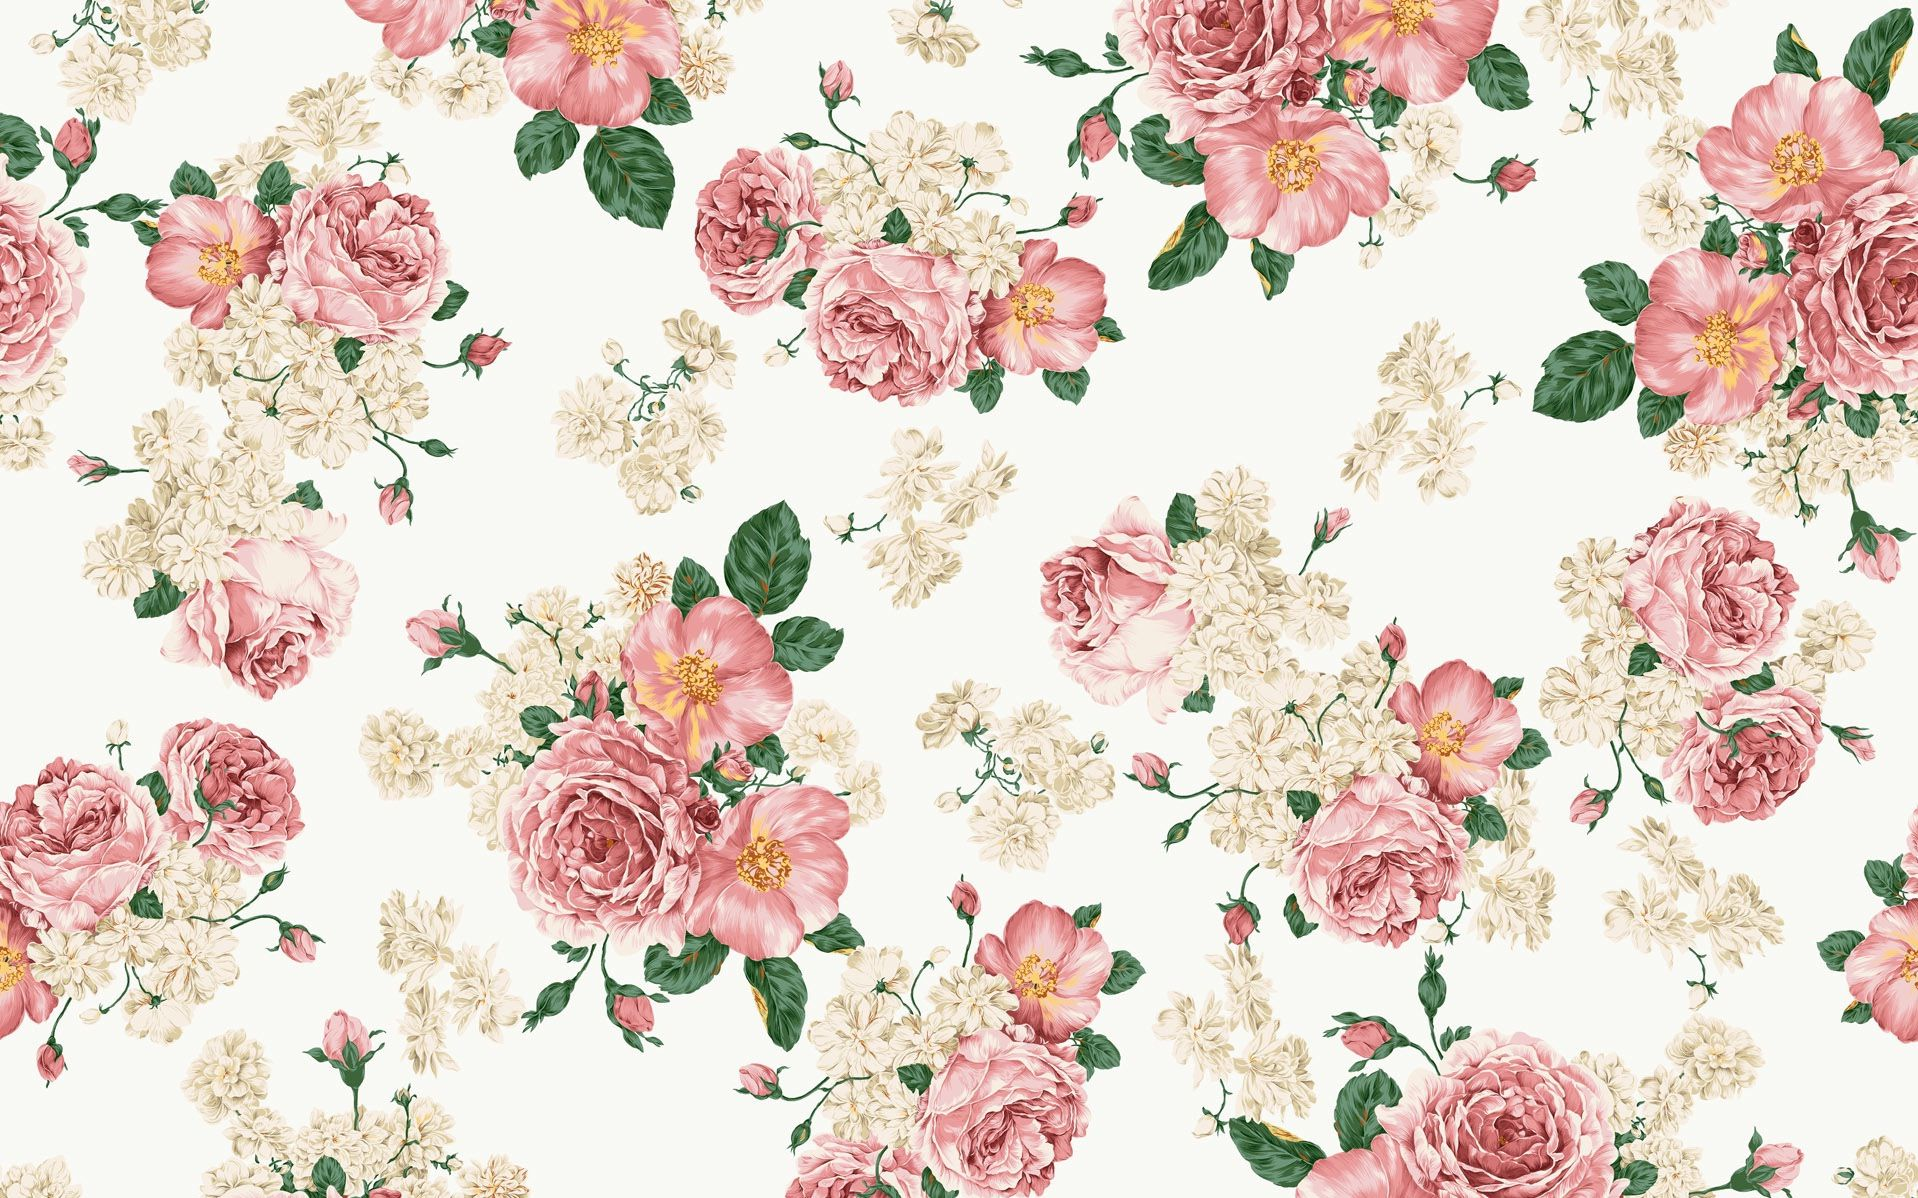 Iphone 6 wallpaper tumblr flowers - Explore Vintage Flowers Wallpaper And More